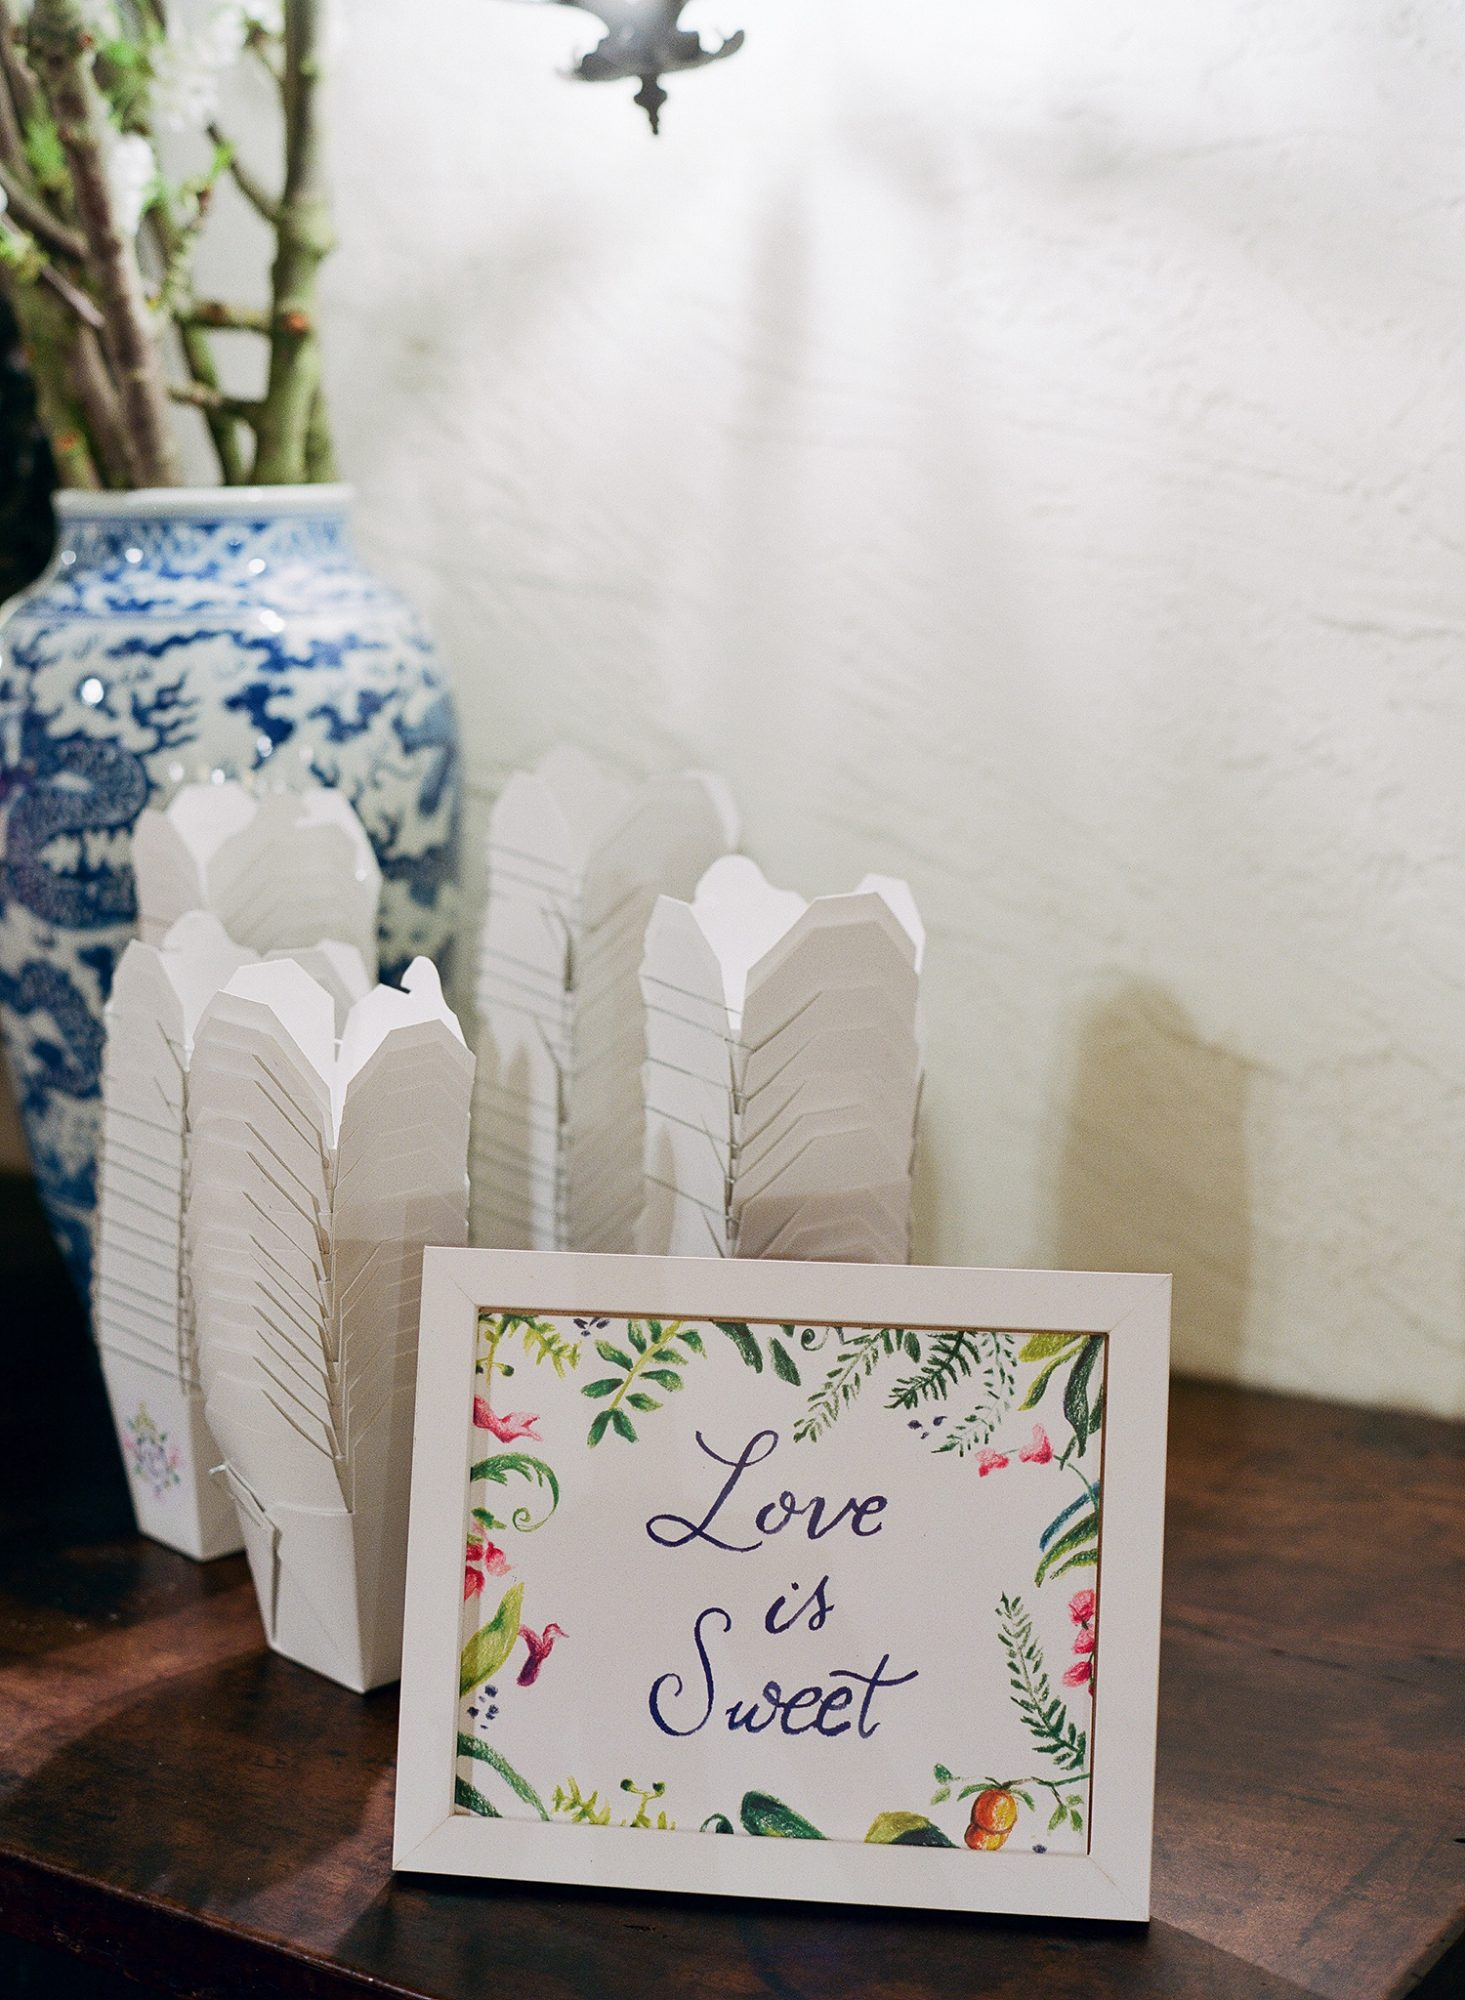 chelsea conor wedding favors to go boxes